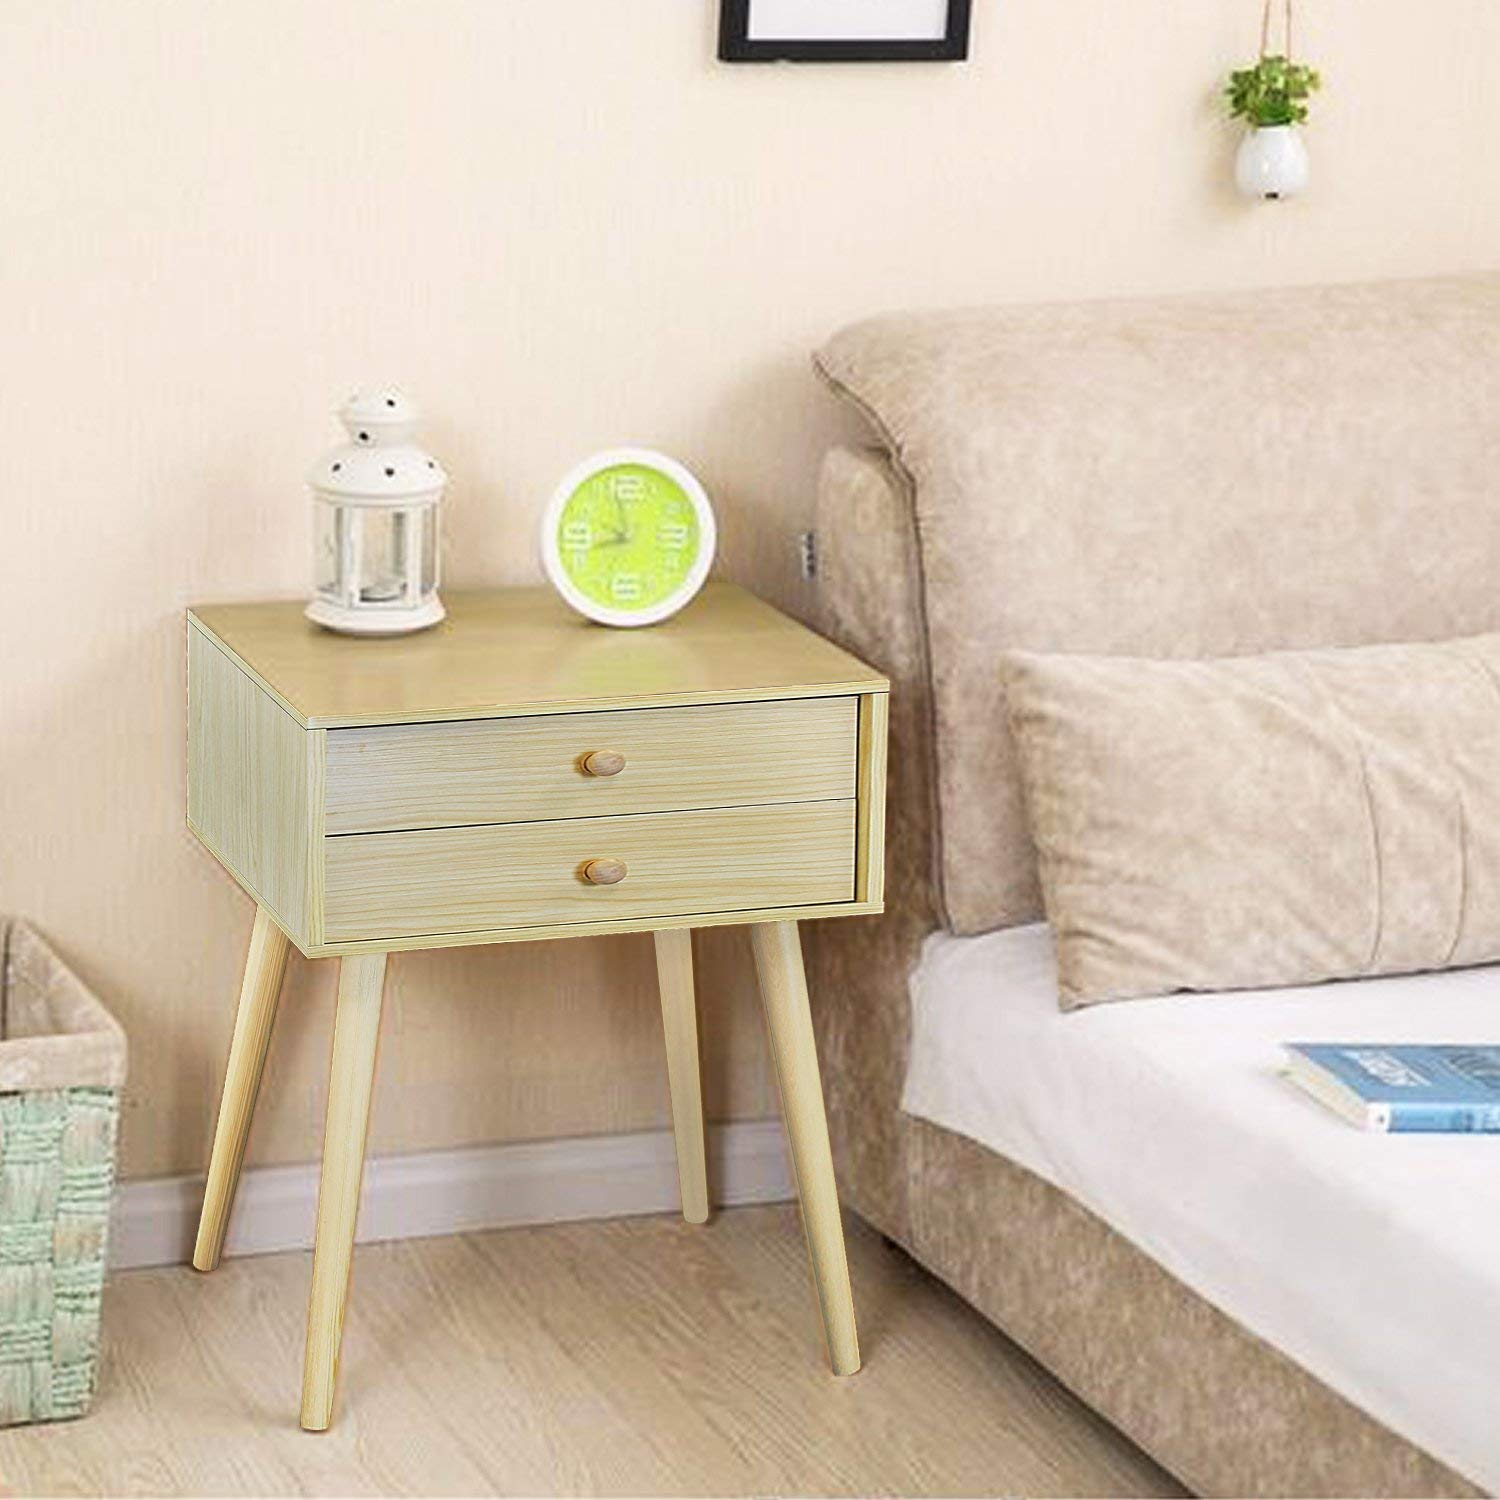 Jerry & Maggie - Nightstand Modern Fashion 4 Thin Long Legs Space Station - 2 Tier Cubic Night Stand Storage Bedside Table W 2 Drawer Real Natural Paulownia Wood (2-Tier   Natural Wood Tone)